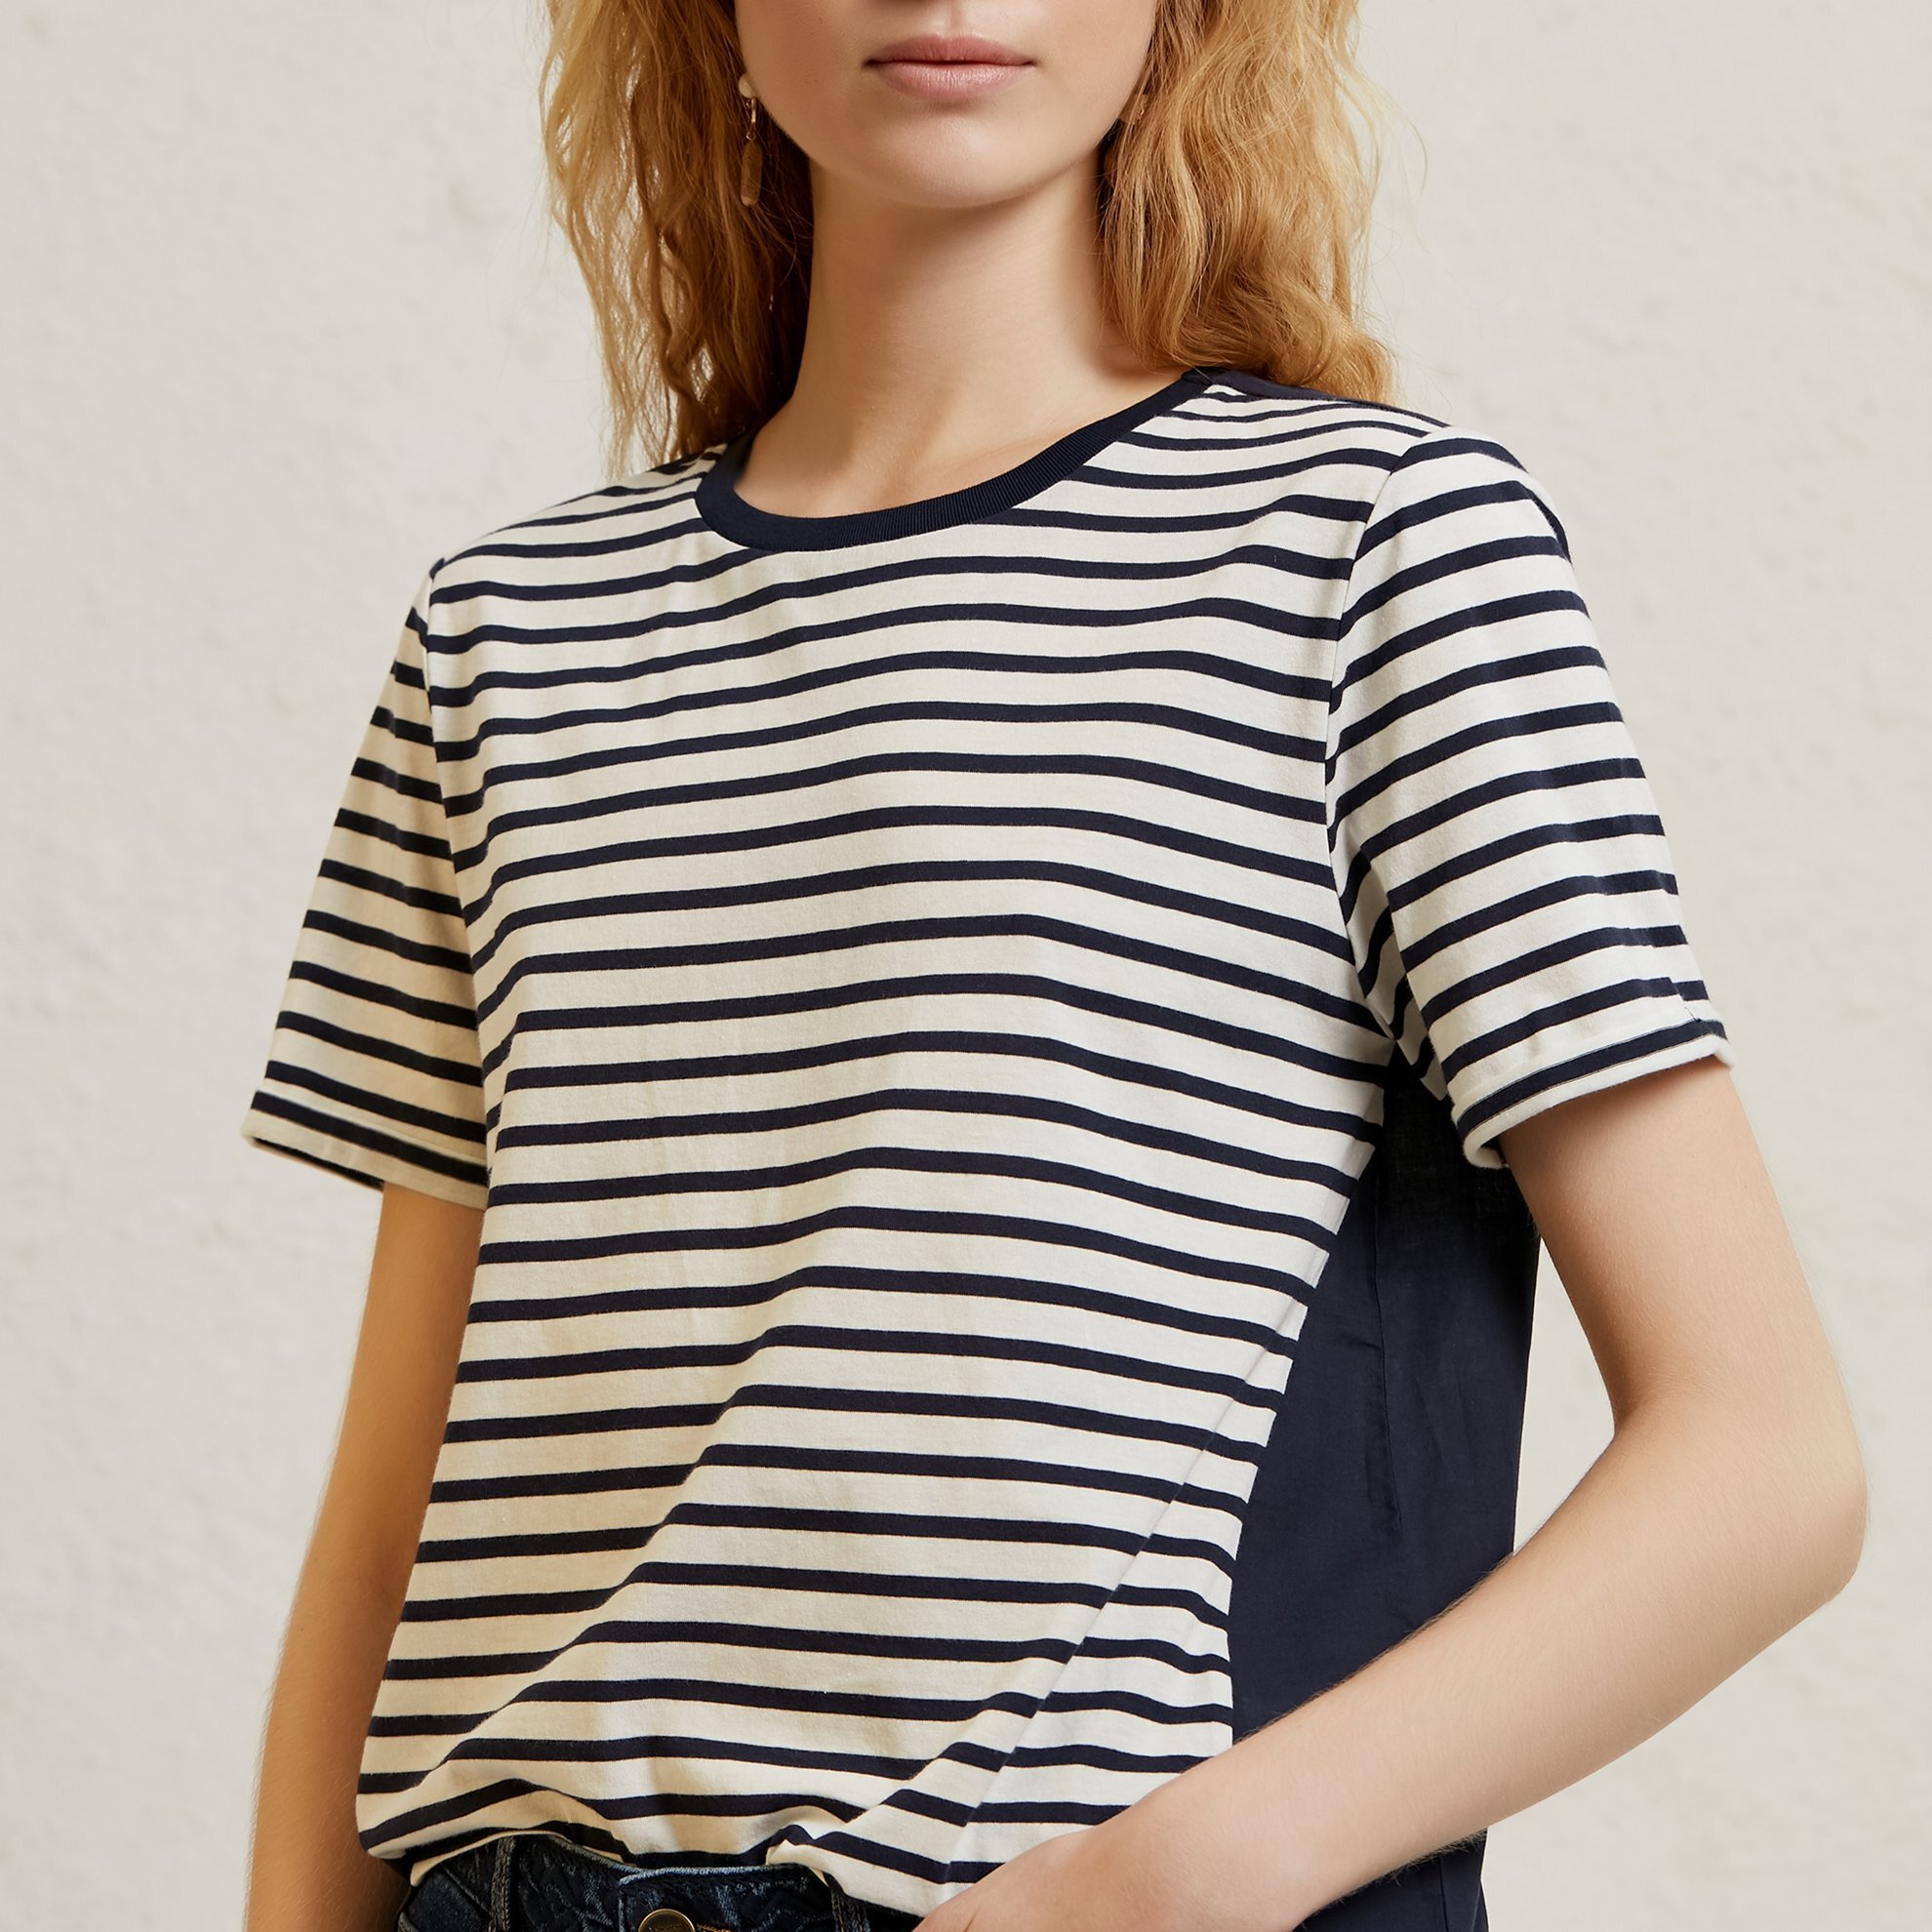 Contrast Panelled Printed T-Shirt